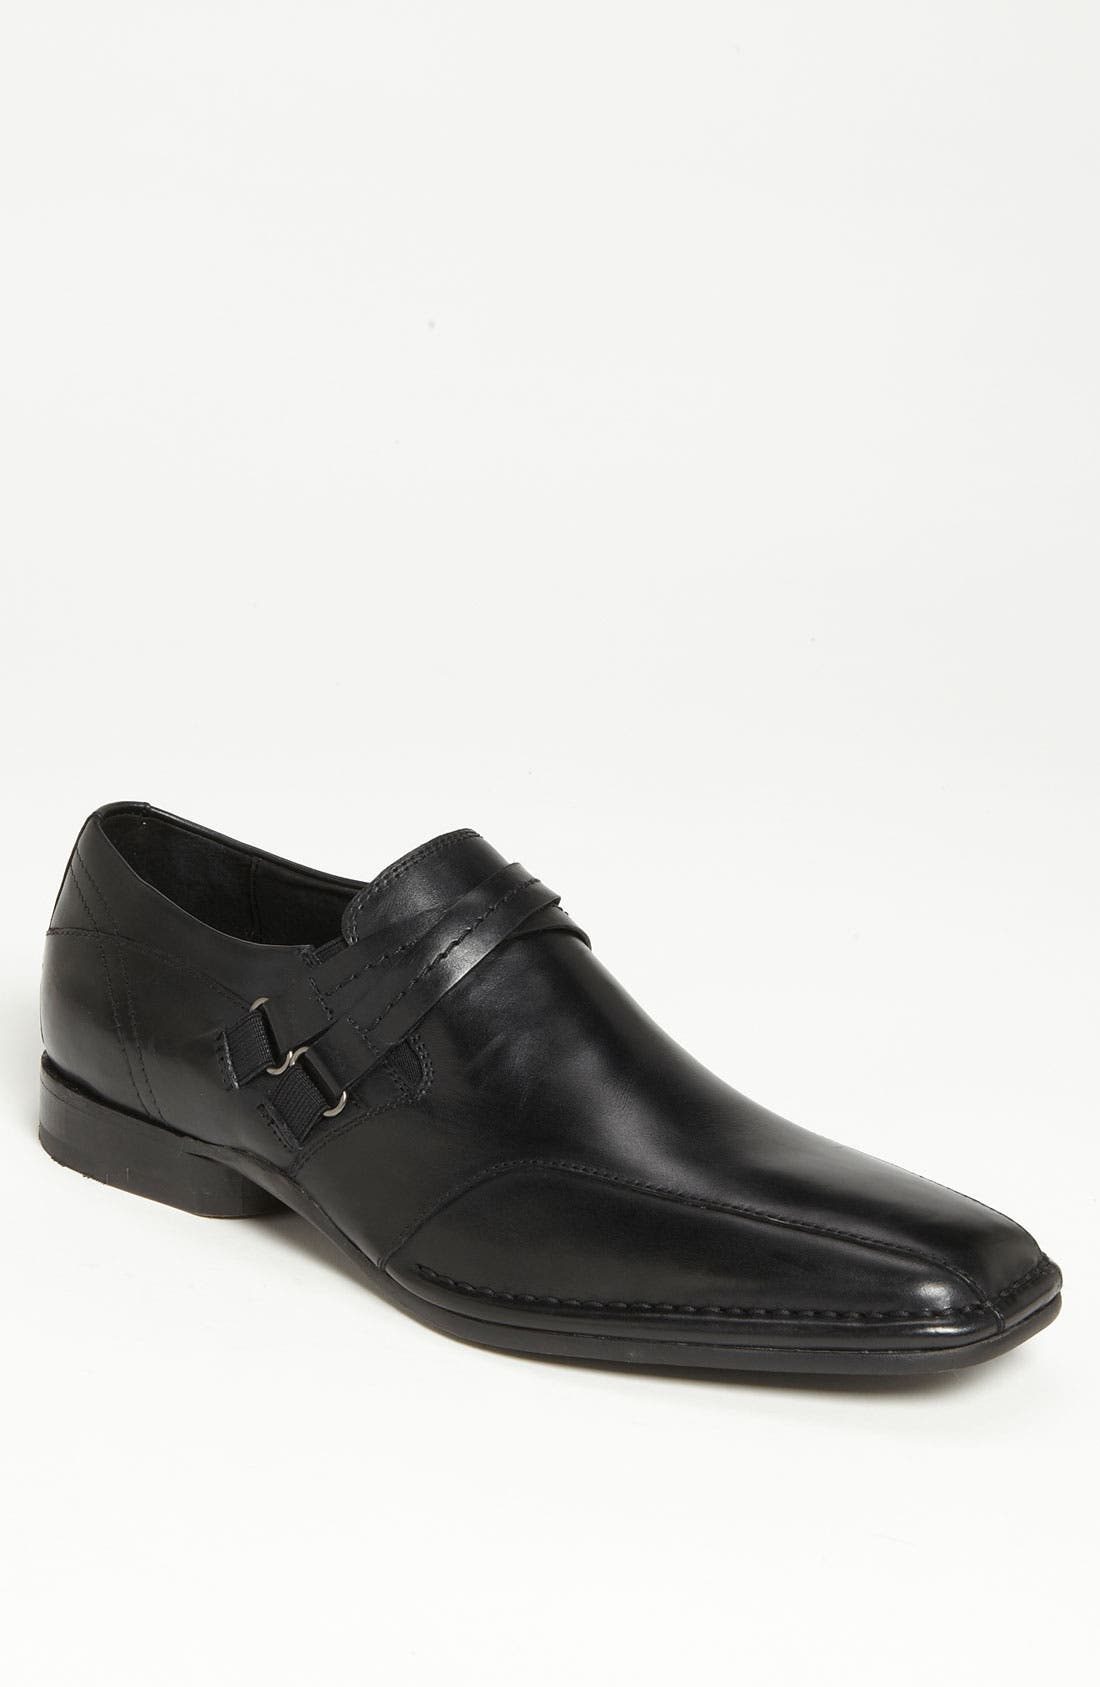 Main Image - Kenneth Cole New York 'Way Out There' Monk Strap Loafer (Online Exclusive)